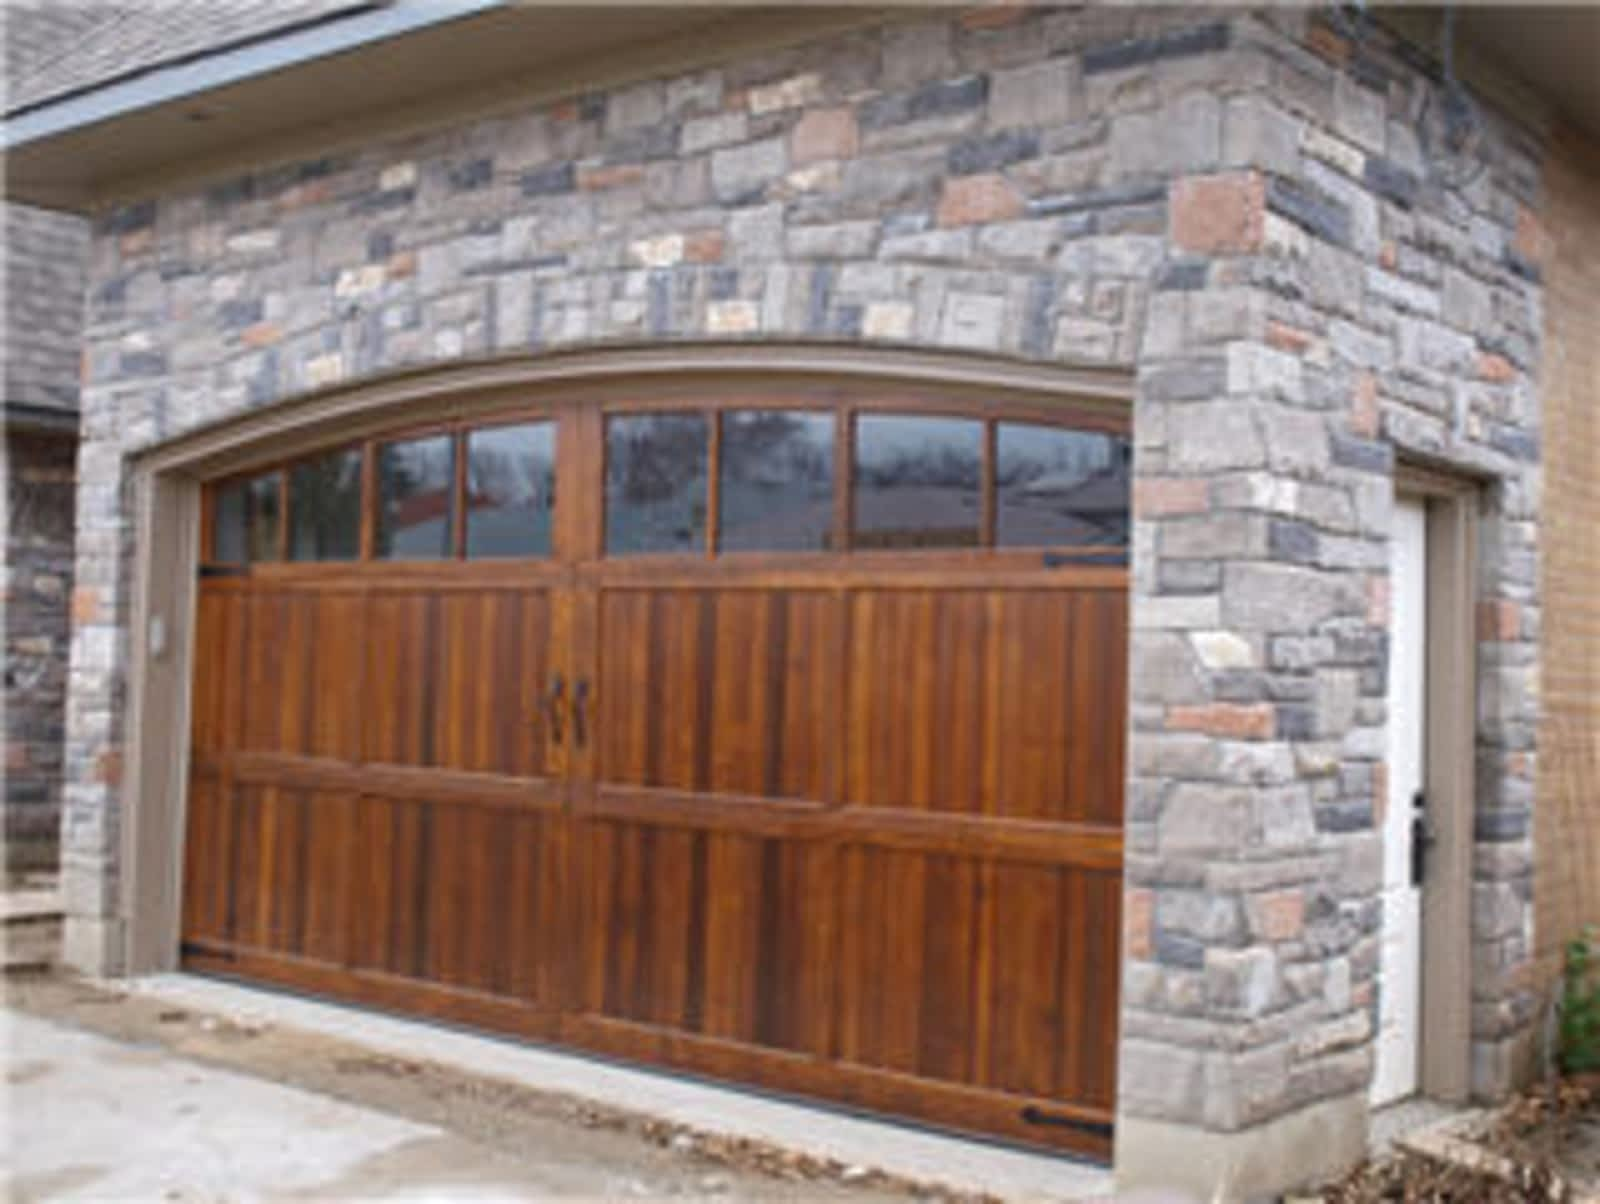 & Markham Garage Doors - Opening Hours - 11-176 Bullock Dr Markham ON